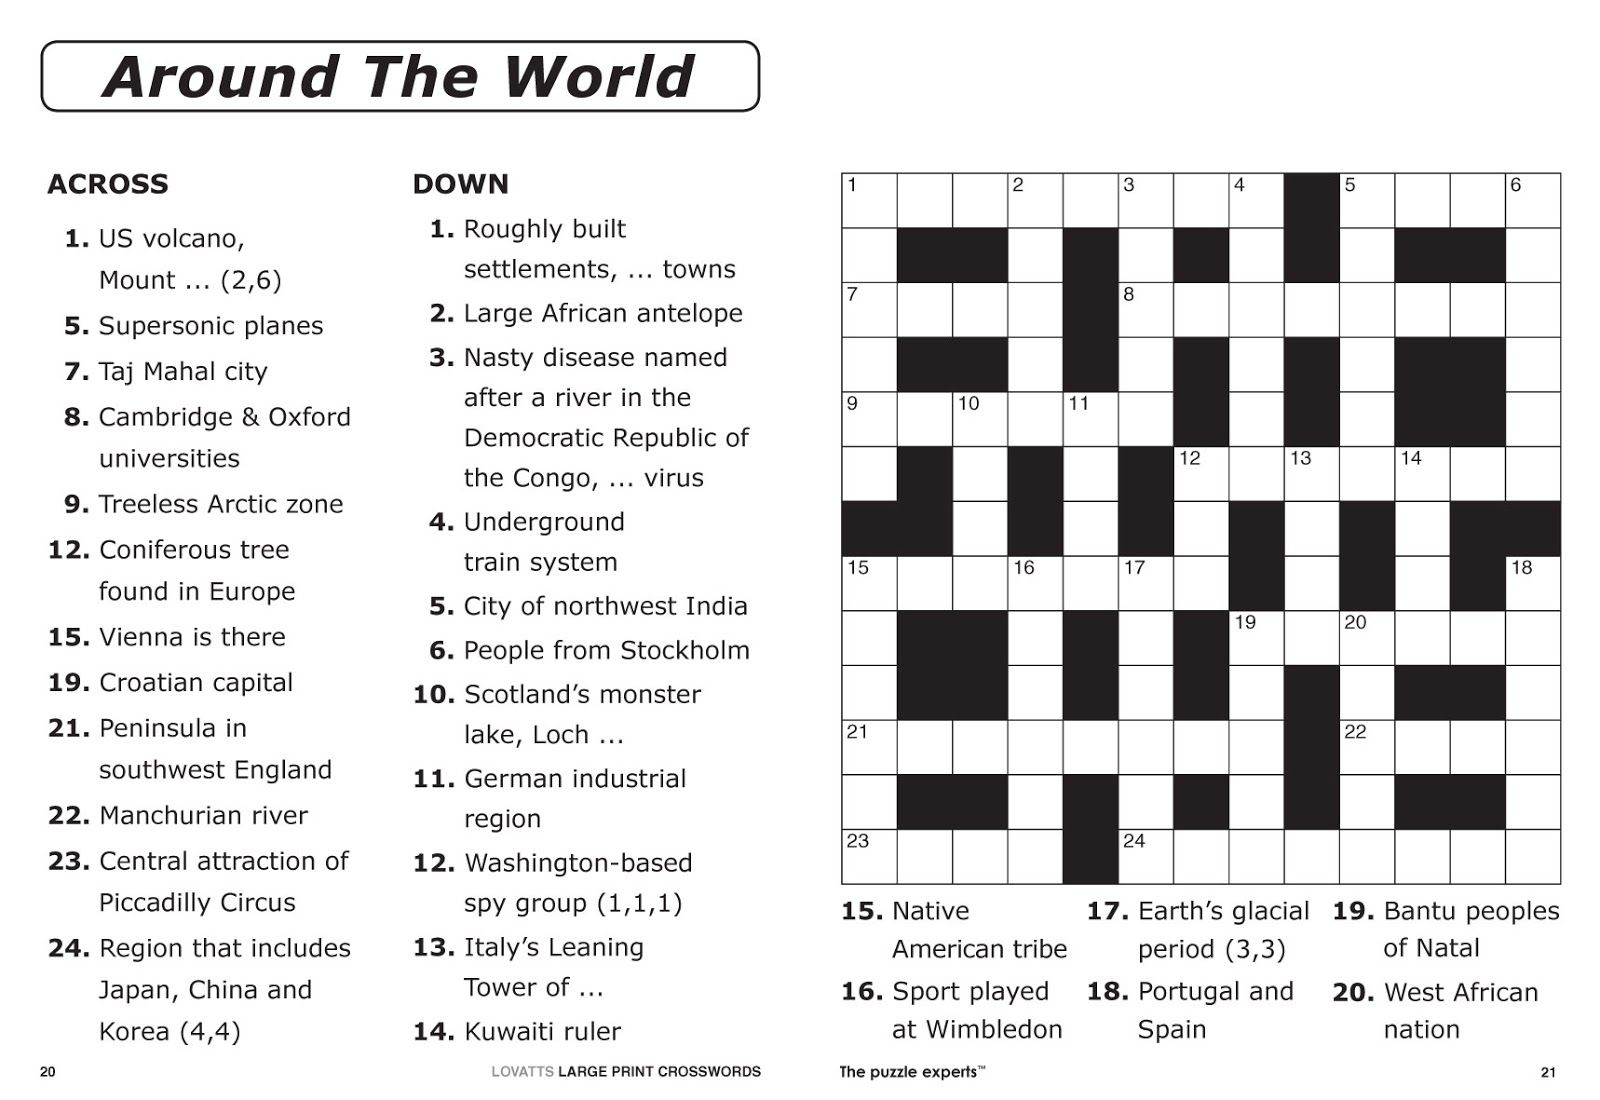 Free Printable Large Print Crossword Puzzles | M3U8 - Printable Crossword Puzzles For 8 Year Olds